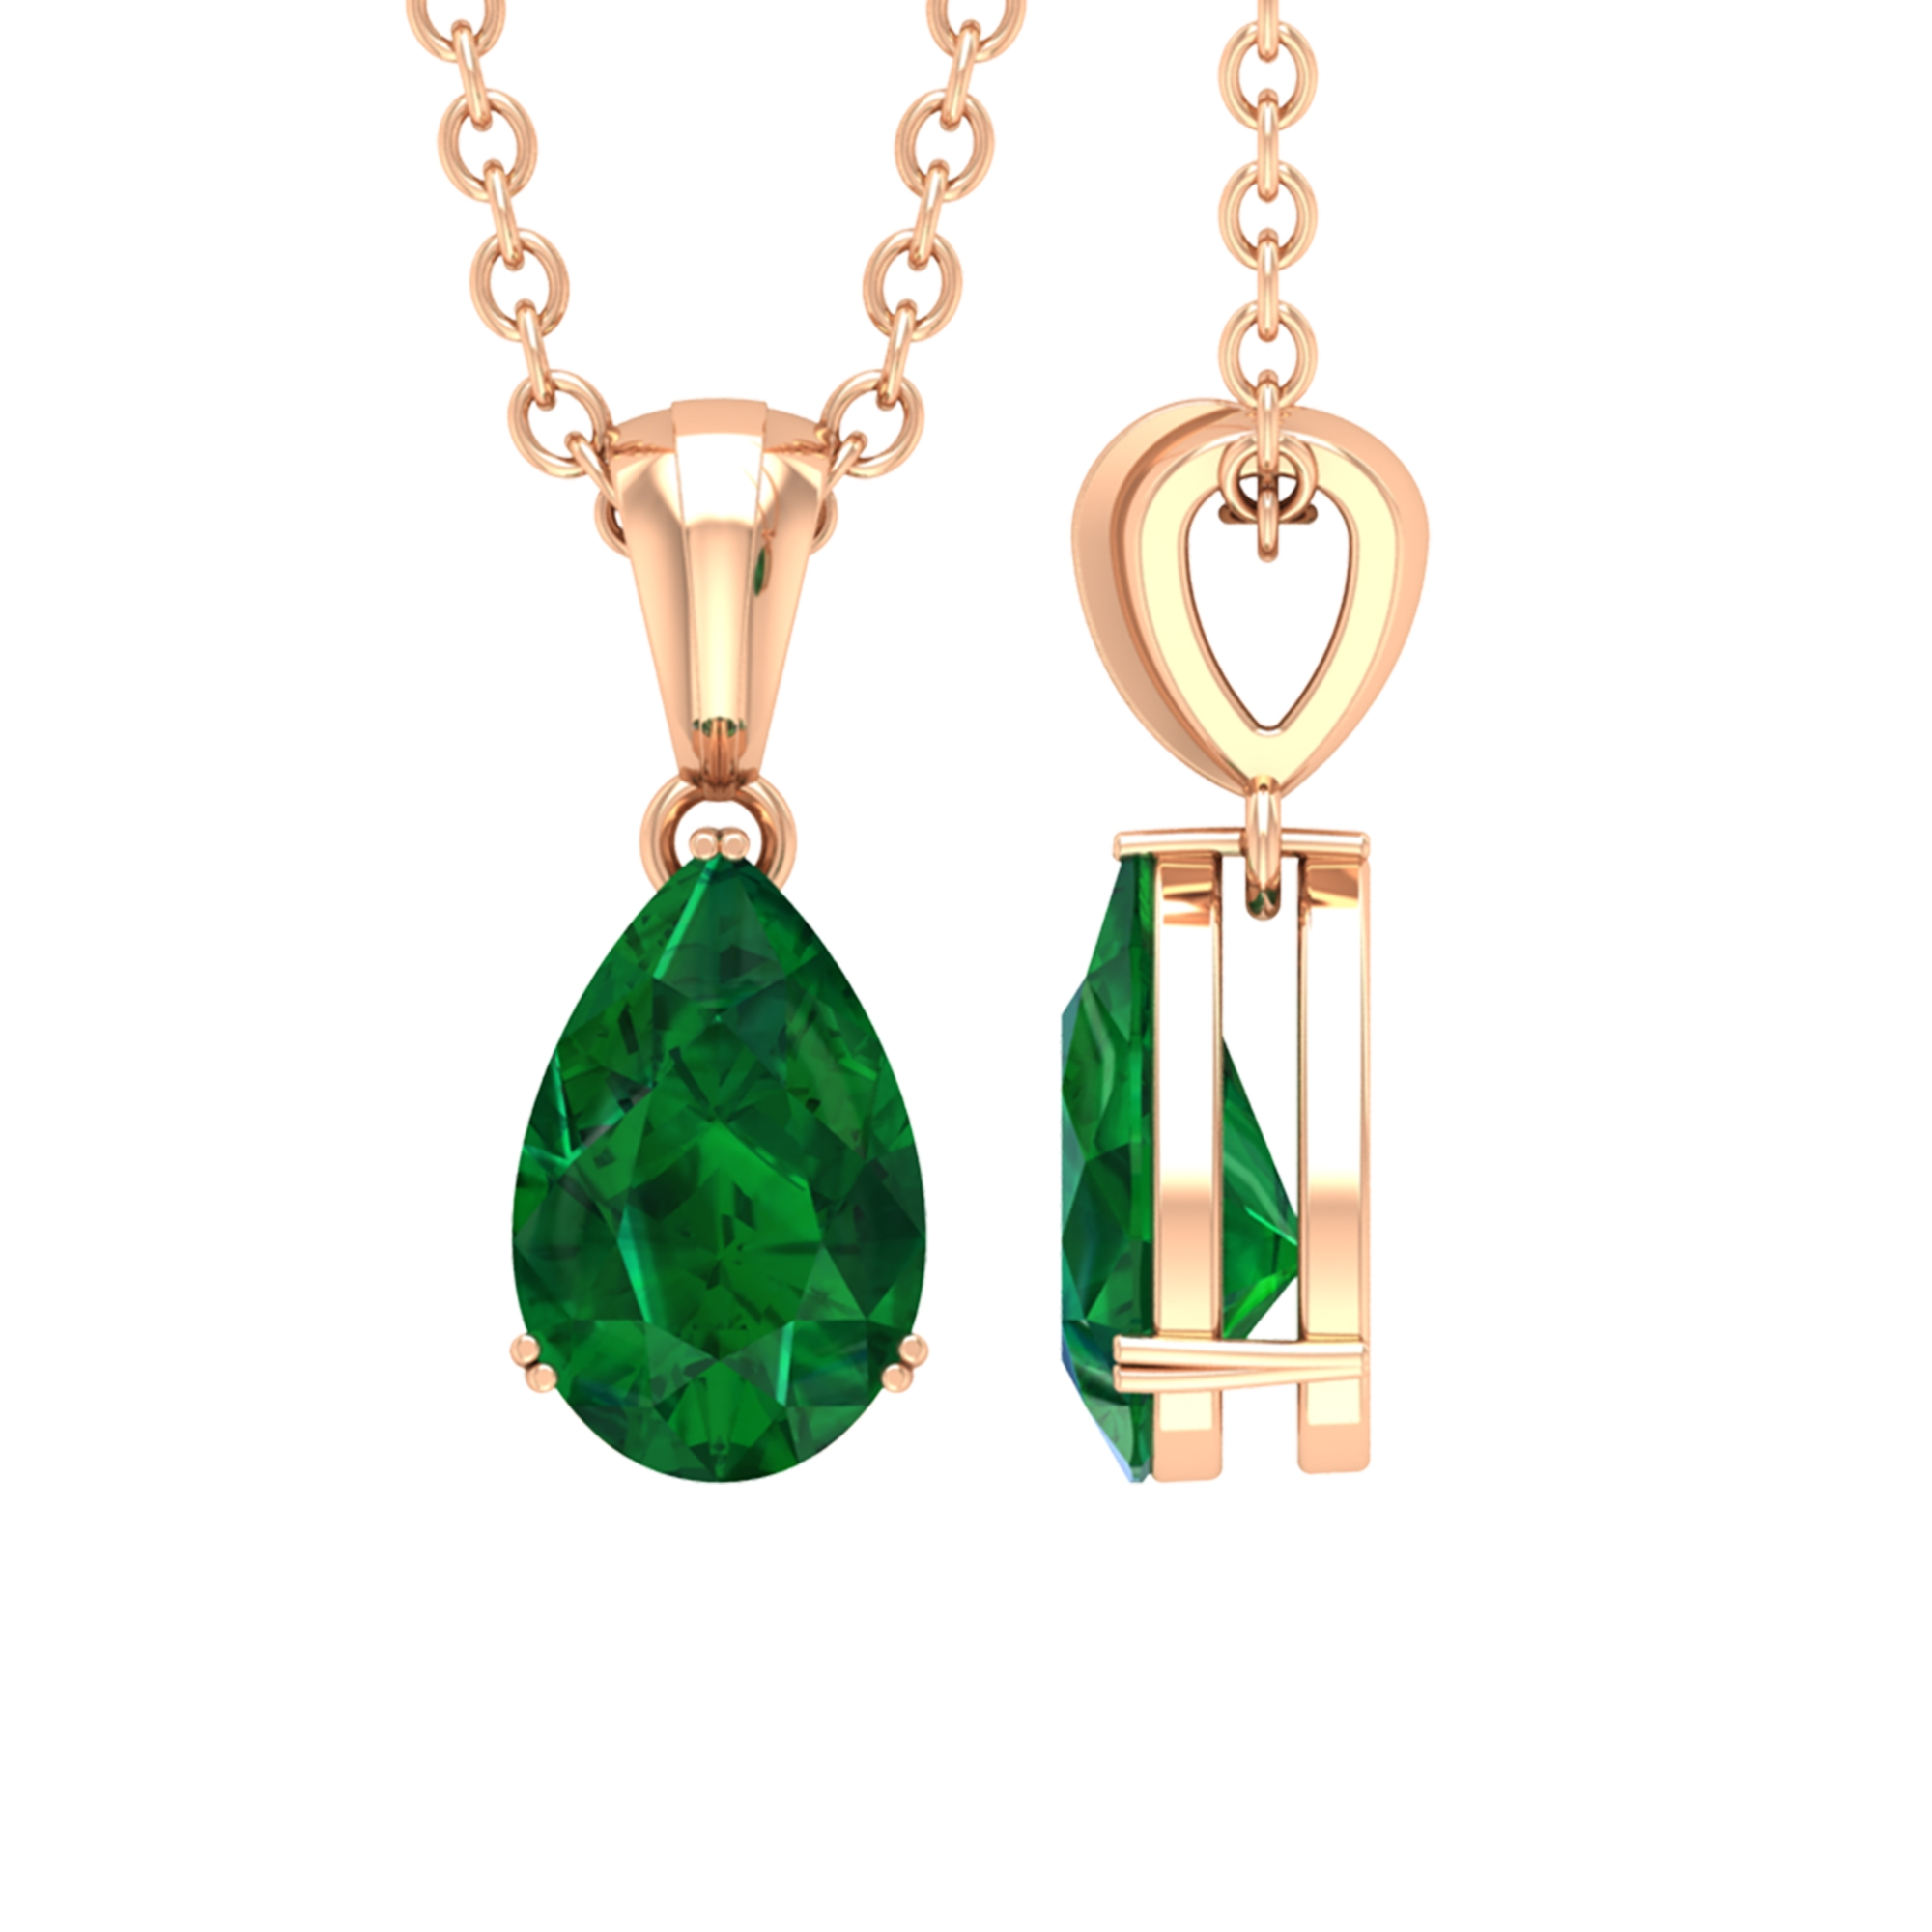 4.5X7 MM Teardrop Emerald Solitaire Pendant in Double Prong Setting with Standard Bail